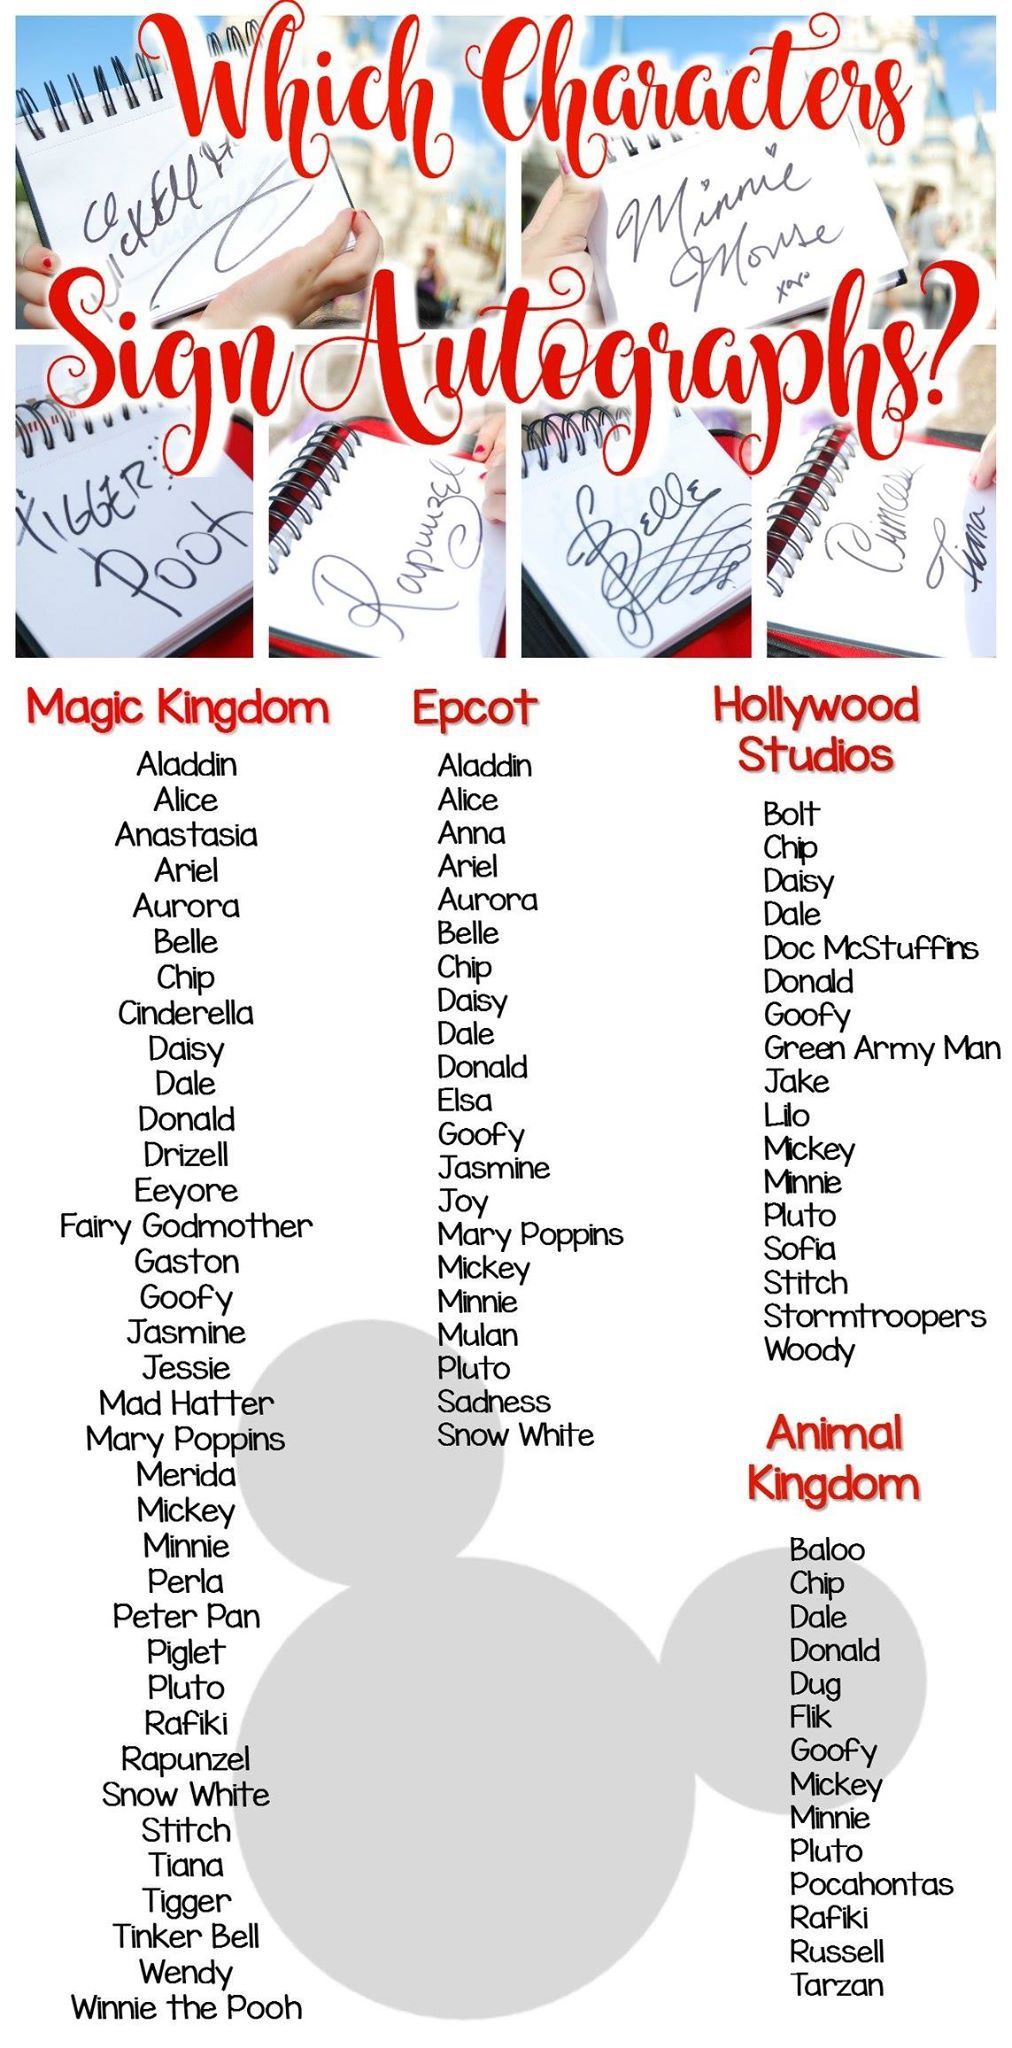 Take Your Loved Ones on a Disney Family Vacation #disneycharacters